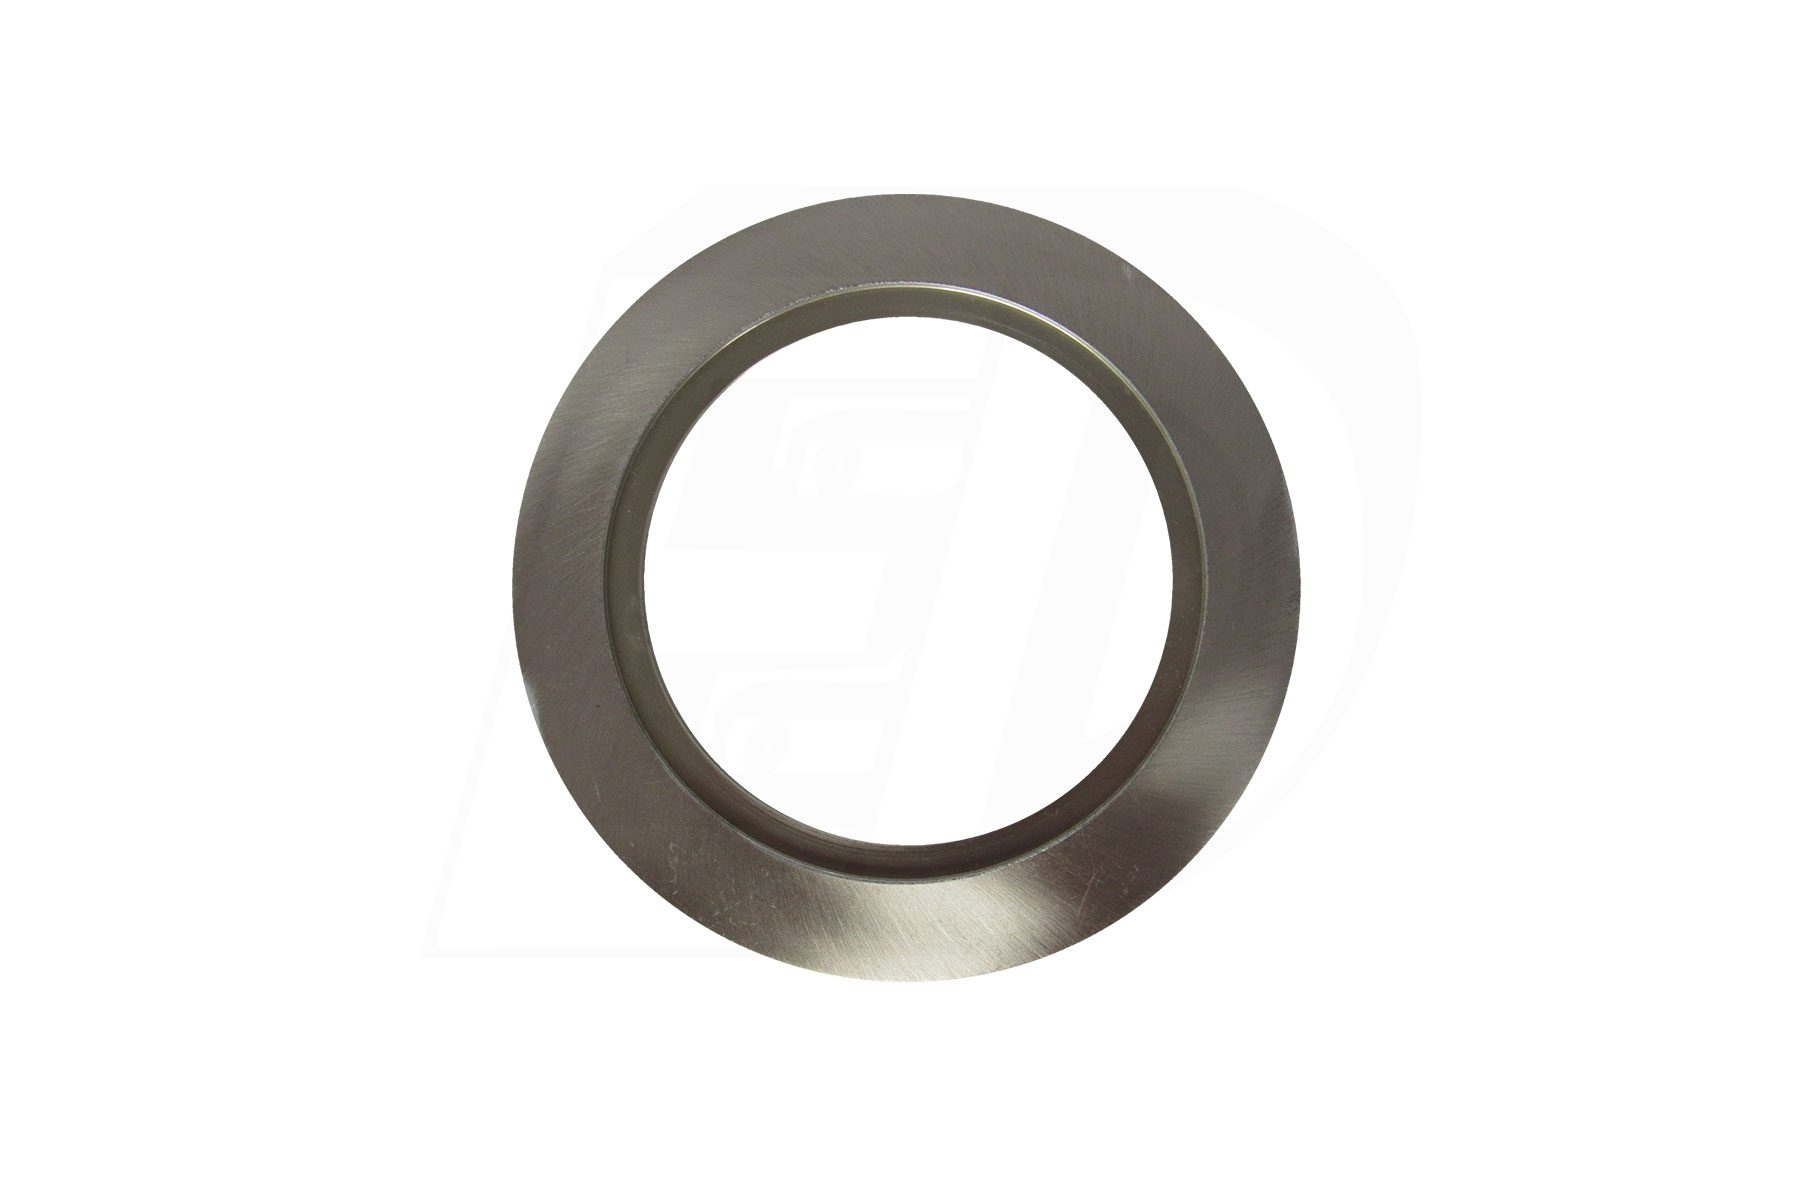 """Brushed Nickel Goof Ring Overall Diameter 4 1/2"""" for DLSGR 3 Inch. Round Integrated LED Gimbal Recessed Light"""